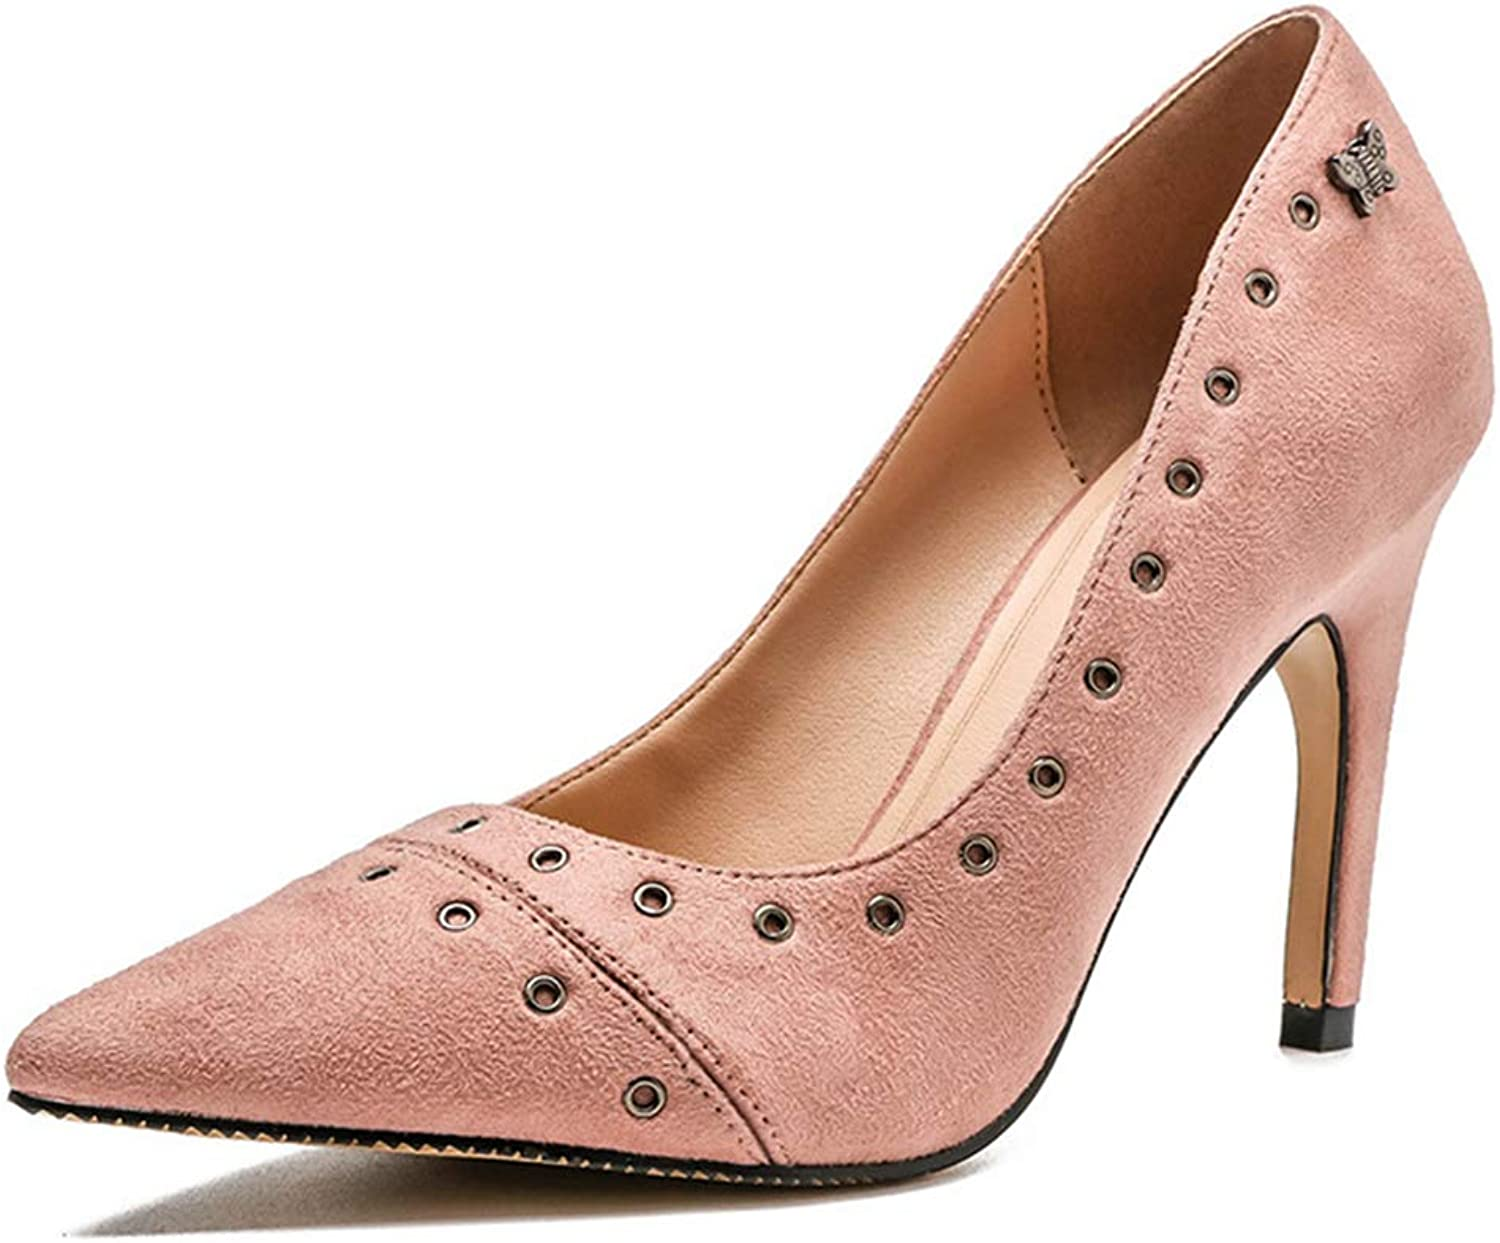 Sam Carle Womens Pink Pumps,Sexy Fashion Casual Pointed Toe High Heel Spring Office Dress Pumps